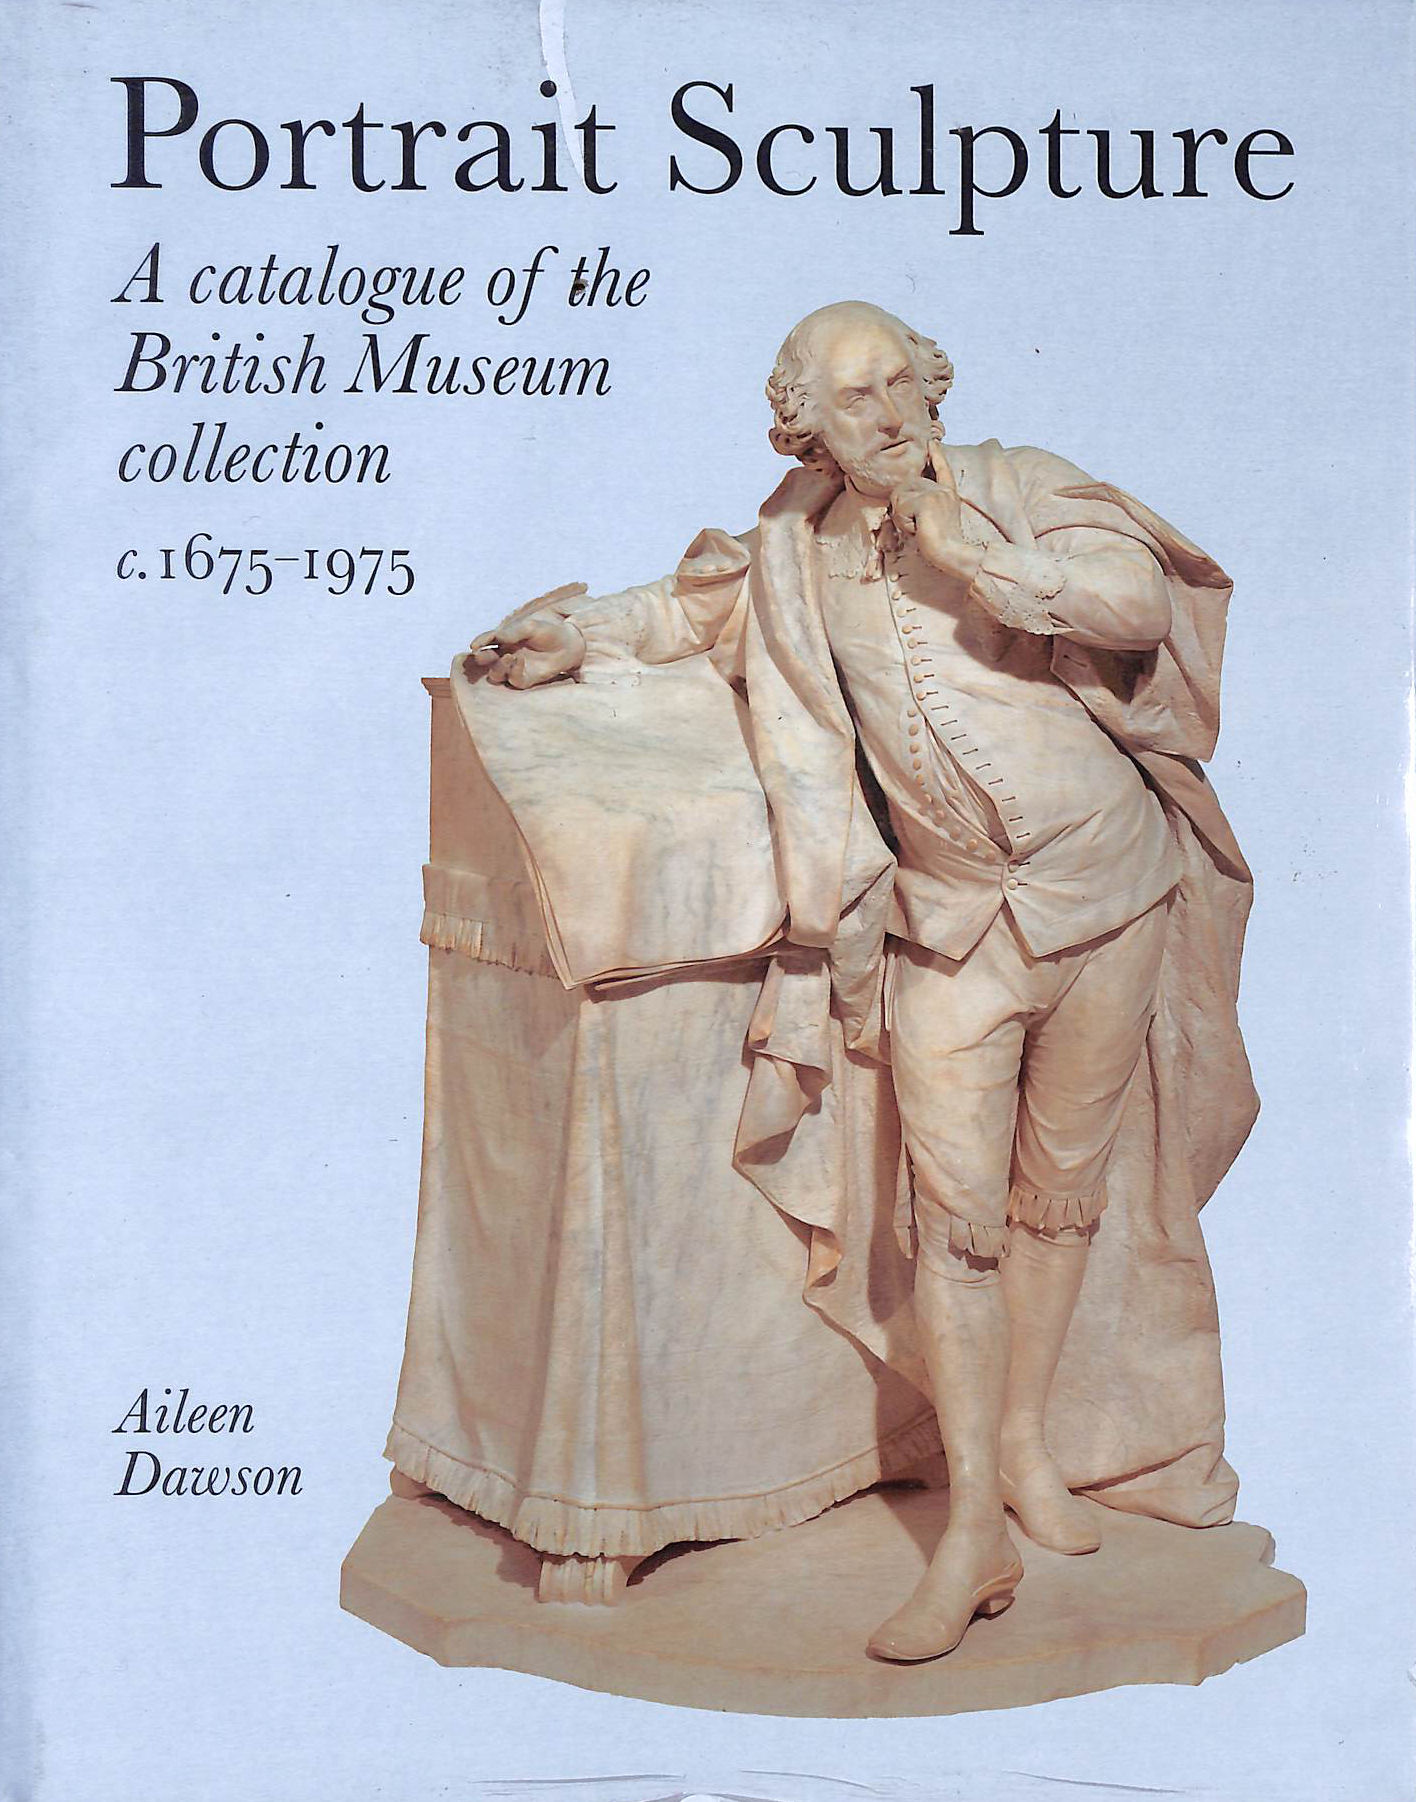 Image for Portrait Sculpture in the British Museum: A Catalogue of the British Museum Collection, c.1675-1975 (Scholarly)